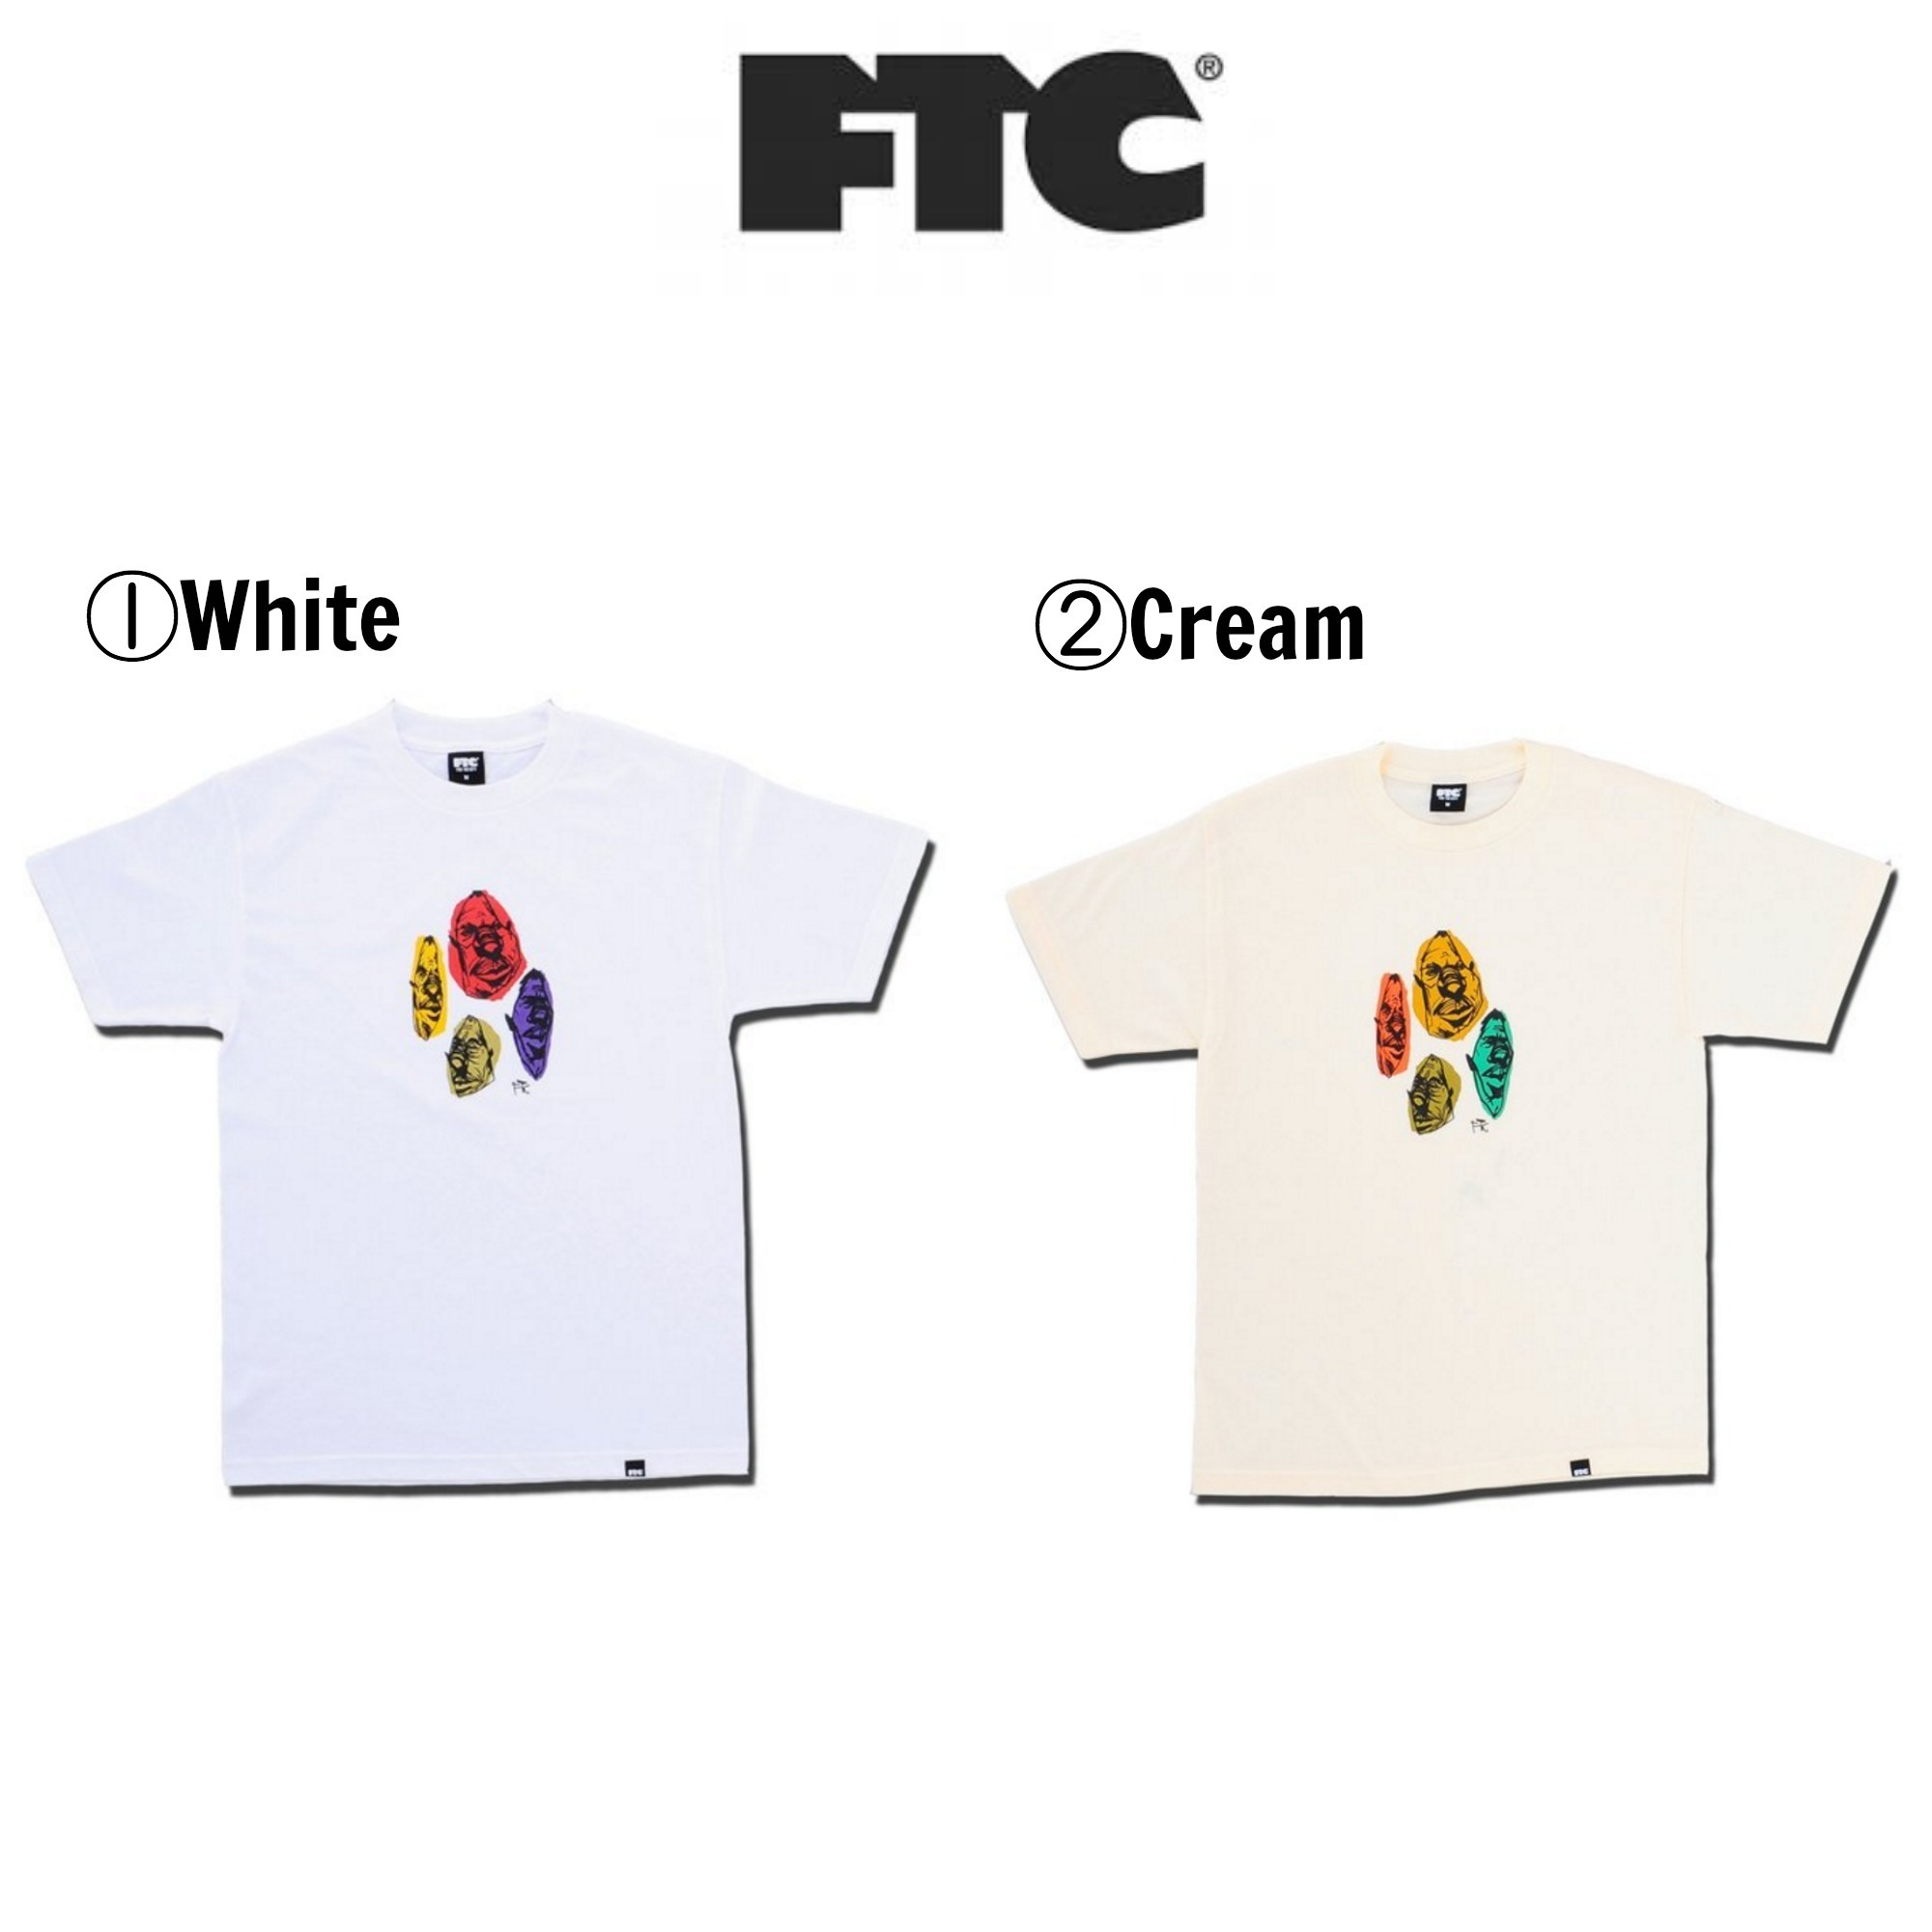 【FTC x Rich Jacobs】☆17SS新作コラボ☆Rich Jacobs for FTC